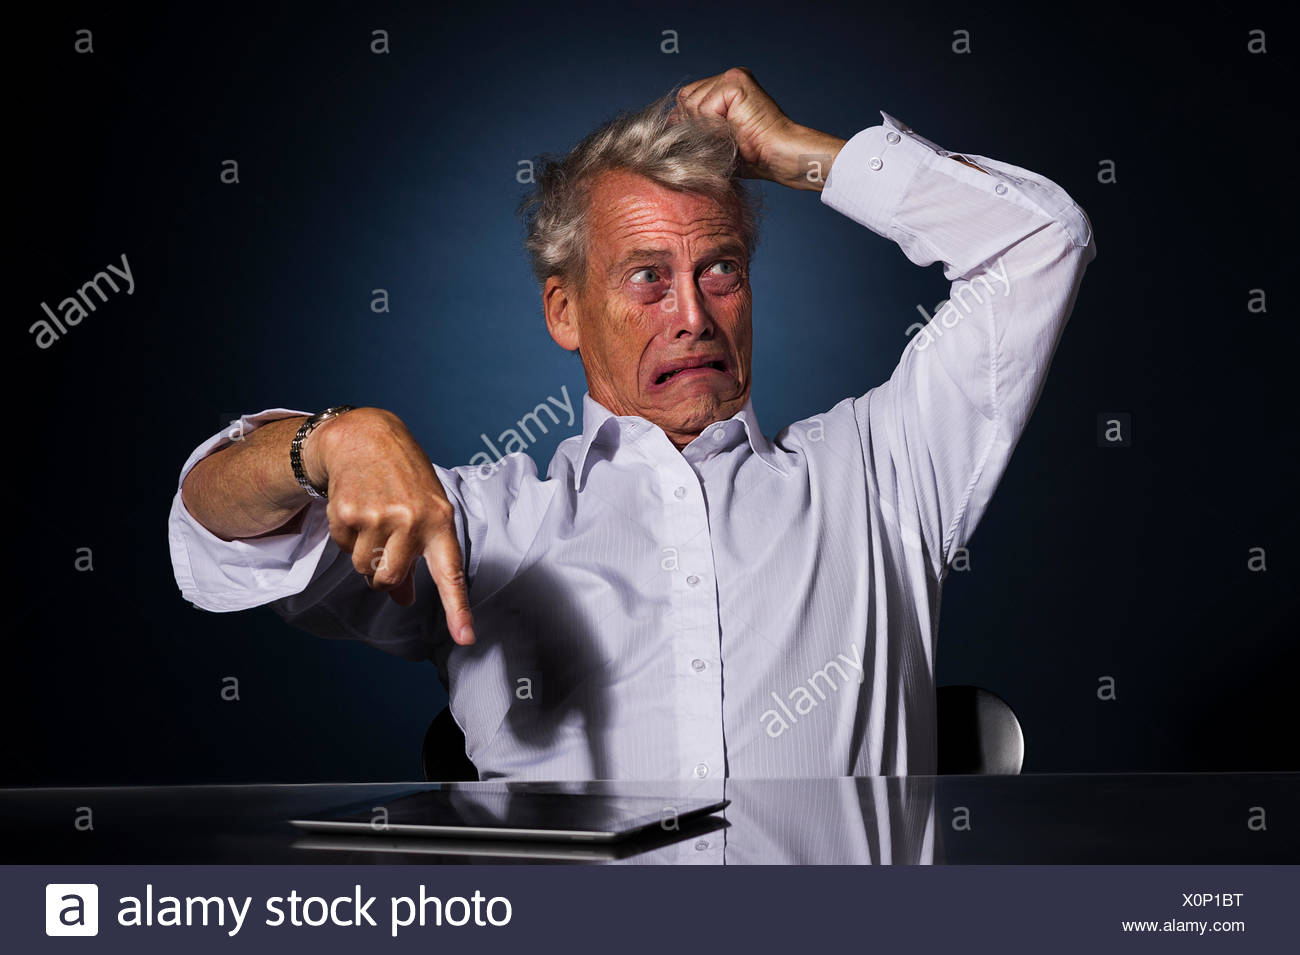 Upset frustrated senior man pointing at his tablet - Stock Image